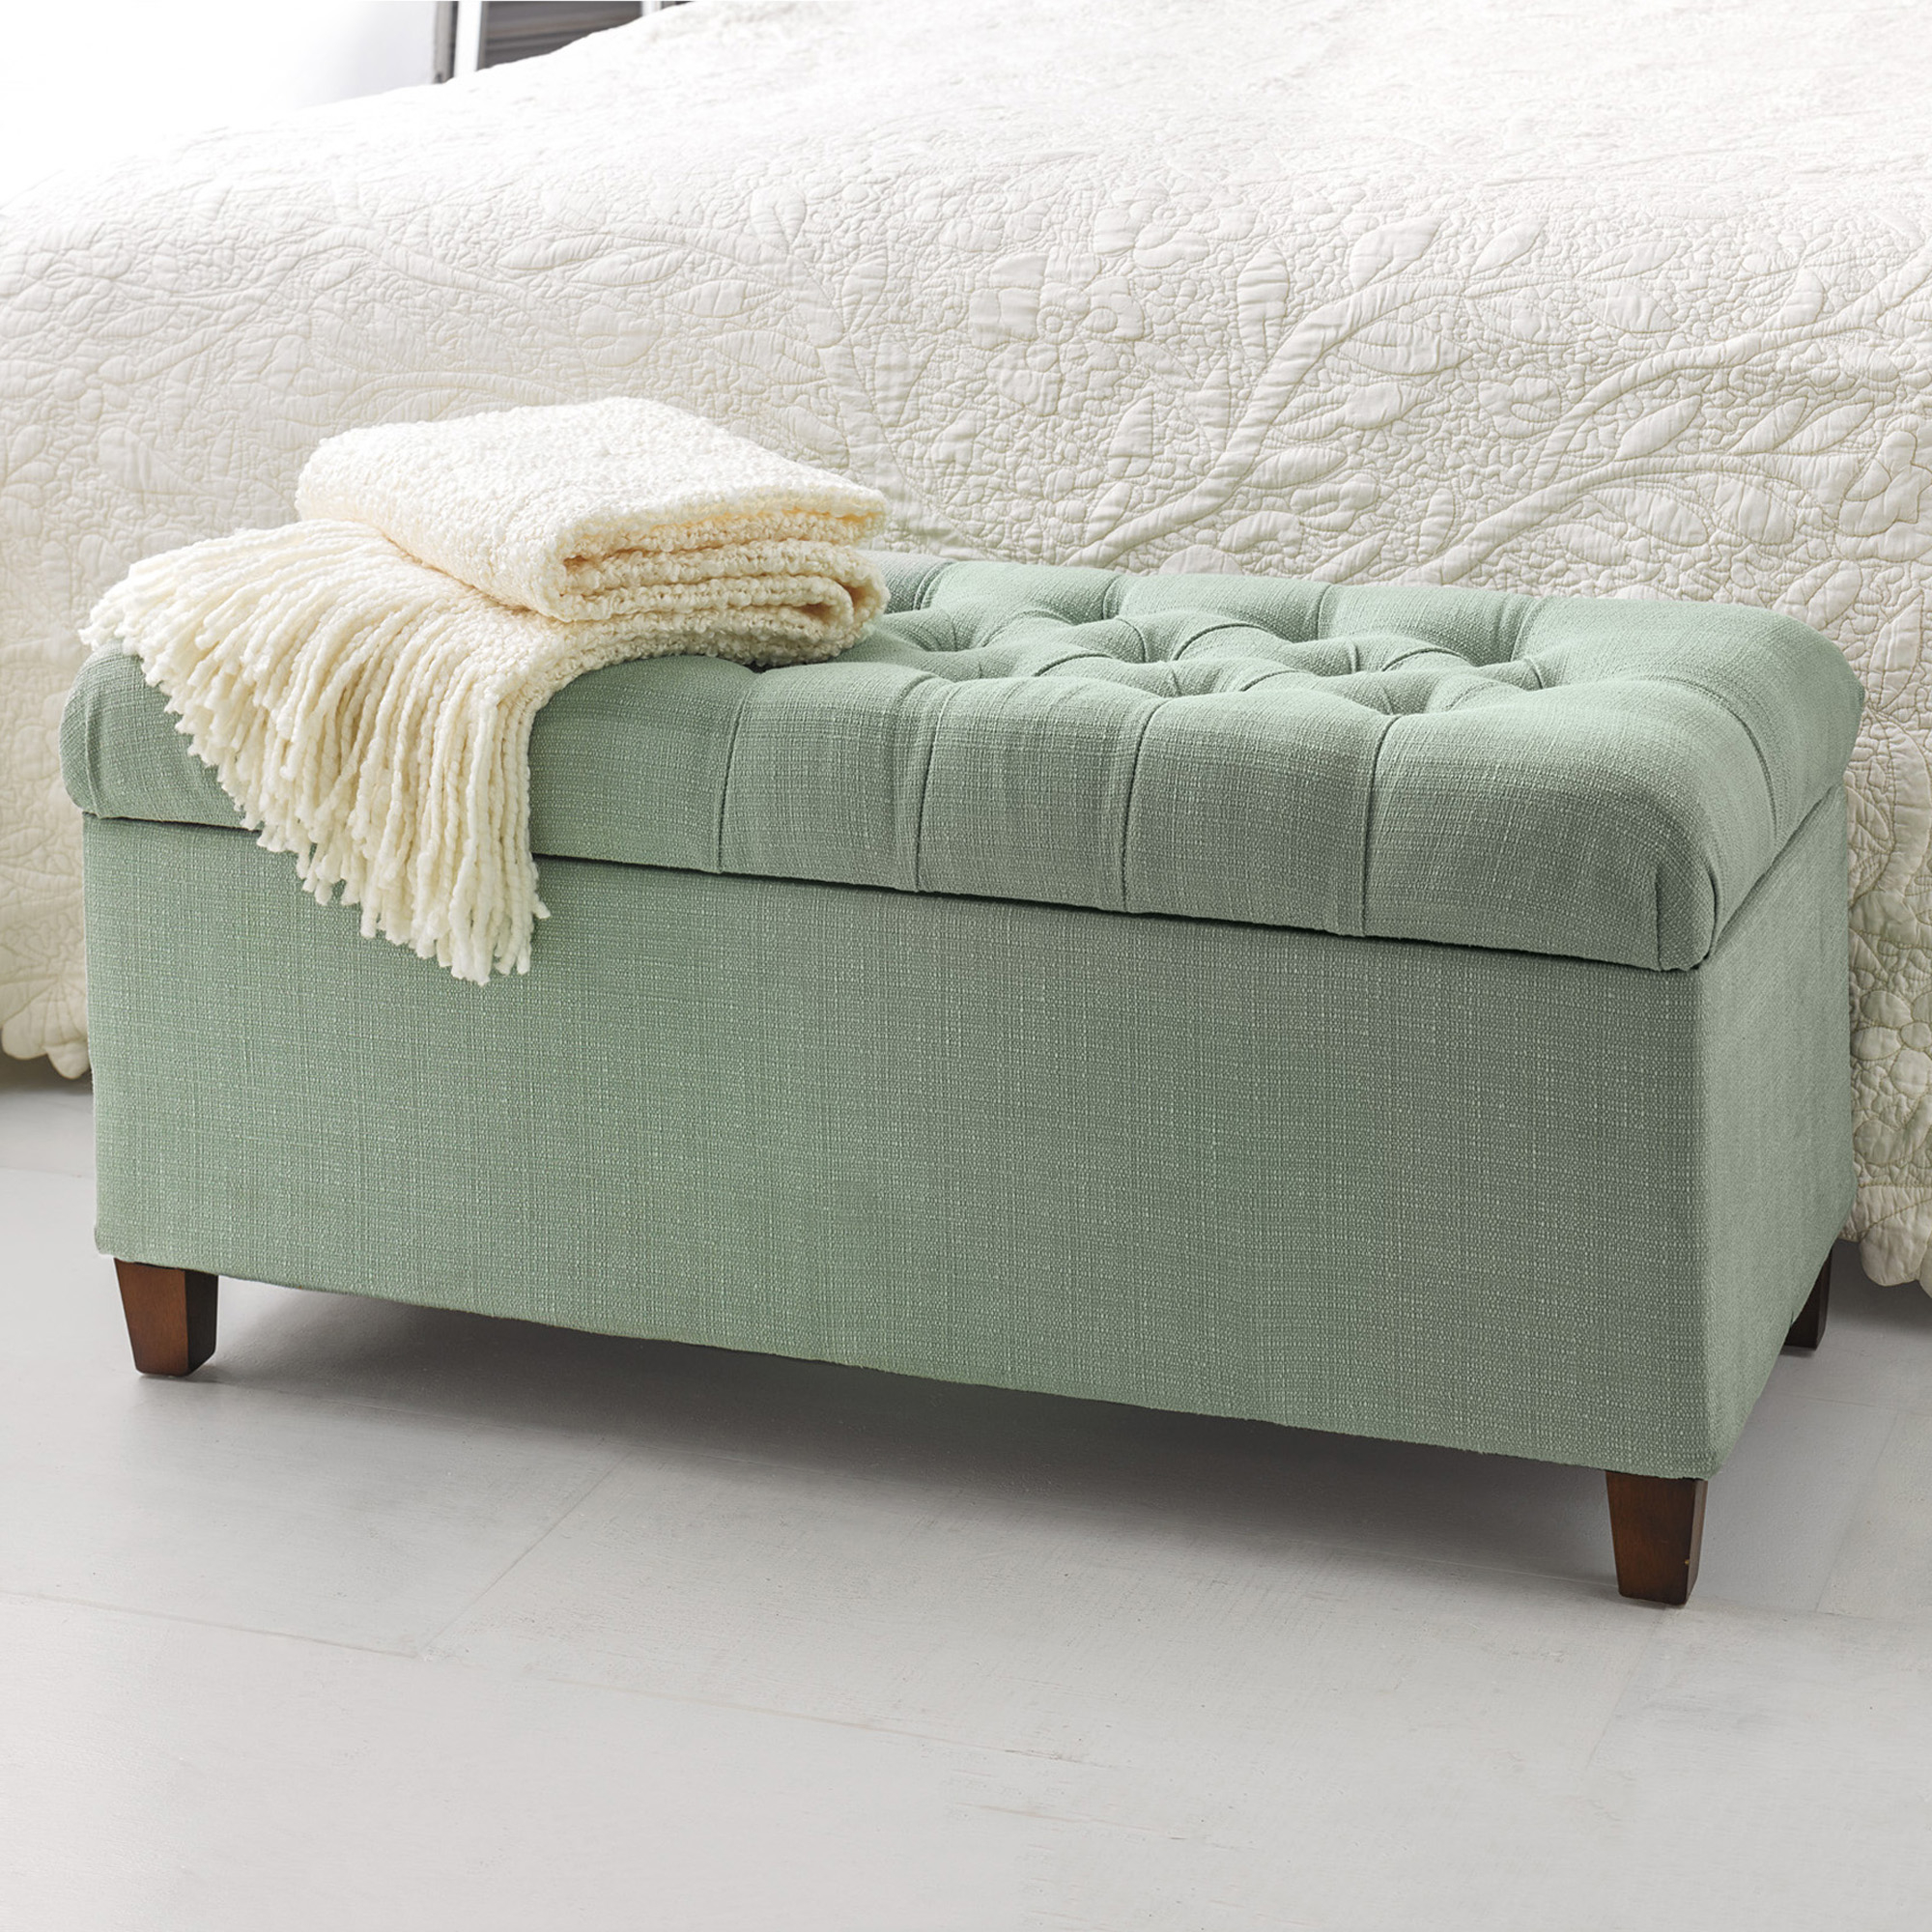 Harlow Storage Bench, Blue